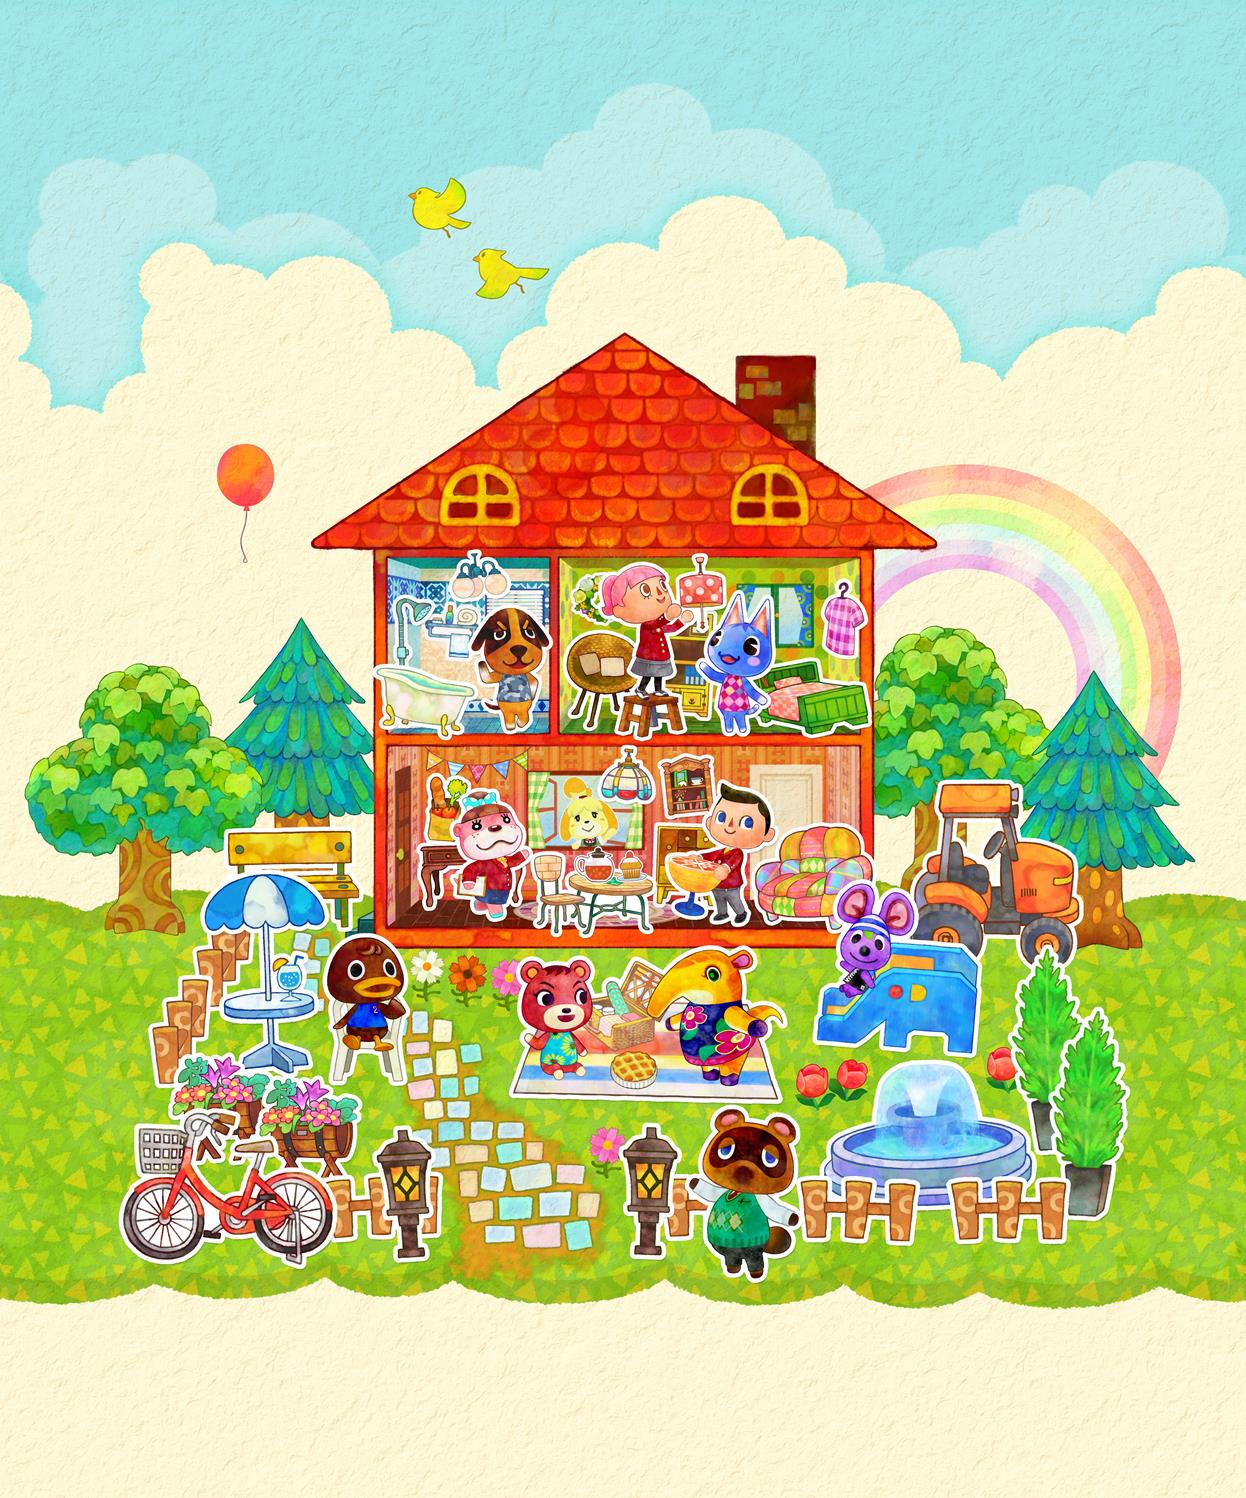 New Collection Of Official Animal Crossing Happy Home Designer Artwork Released 06 02 2015